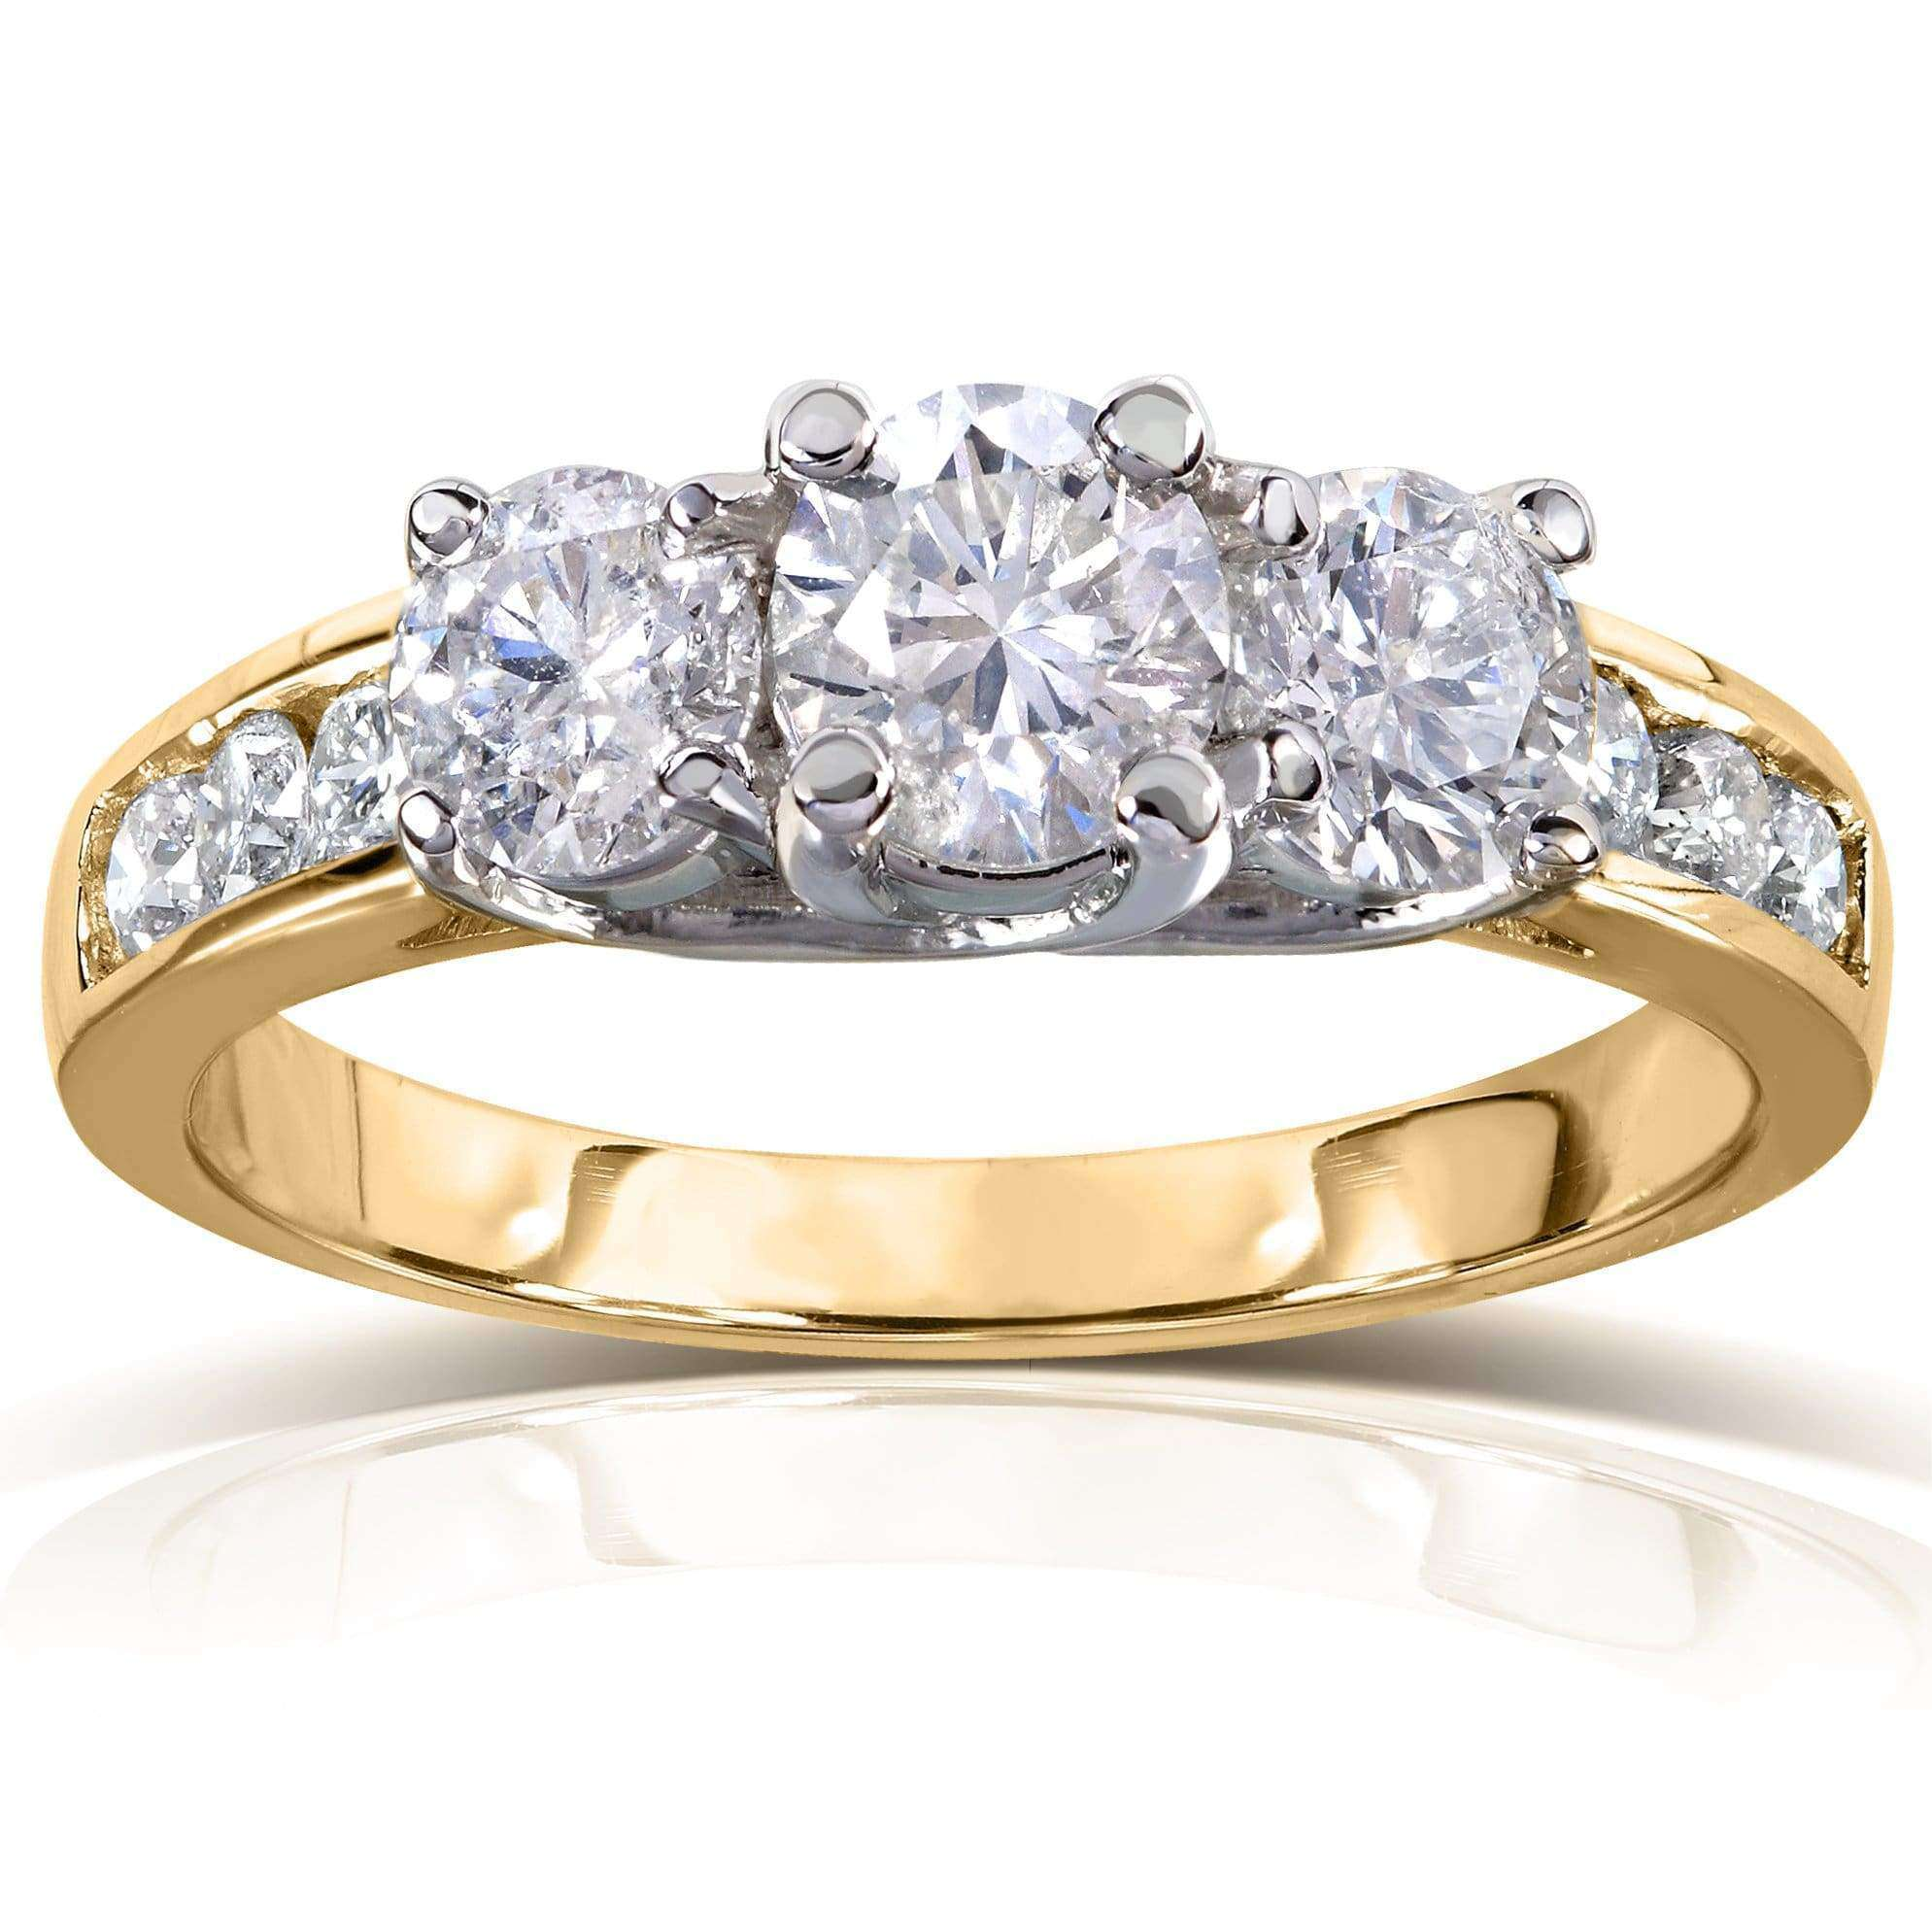 Compare Round Brilliant Three Stone Diamond Engagement Ring 1 1/2 carats (ctw) in 14k White or Yellow Gold - yellow-gold 8